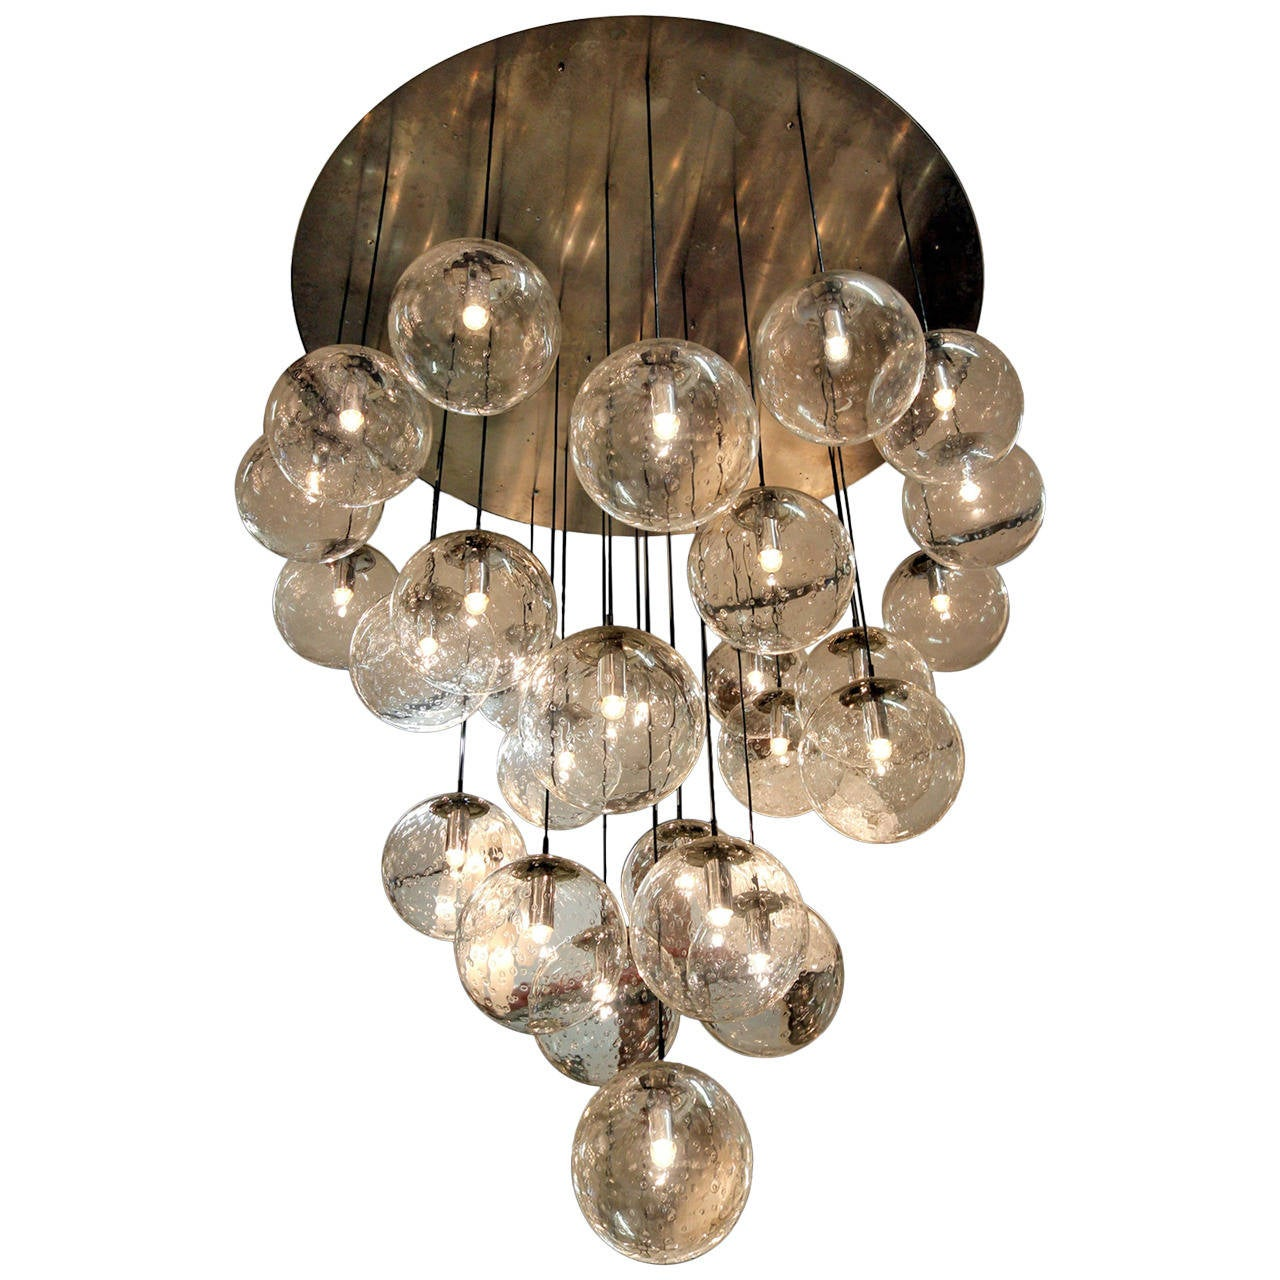 Amaizing 1970 S Huge Glass Balls Chandelier By Raak Amsterdam At 1stdibs